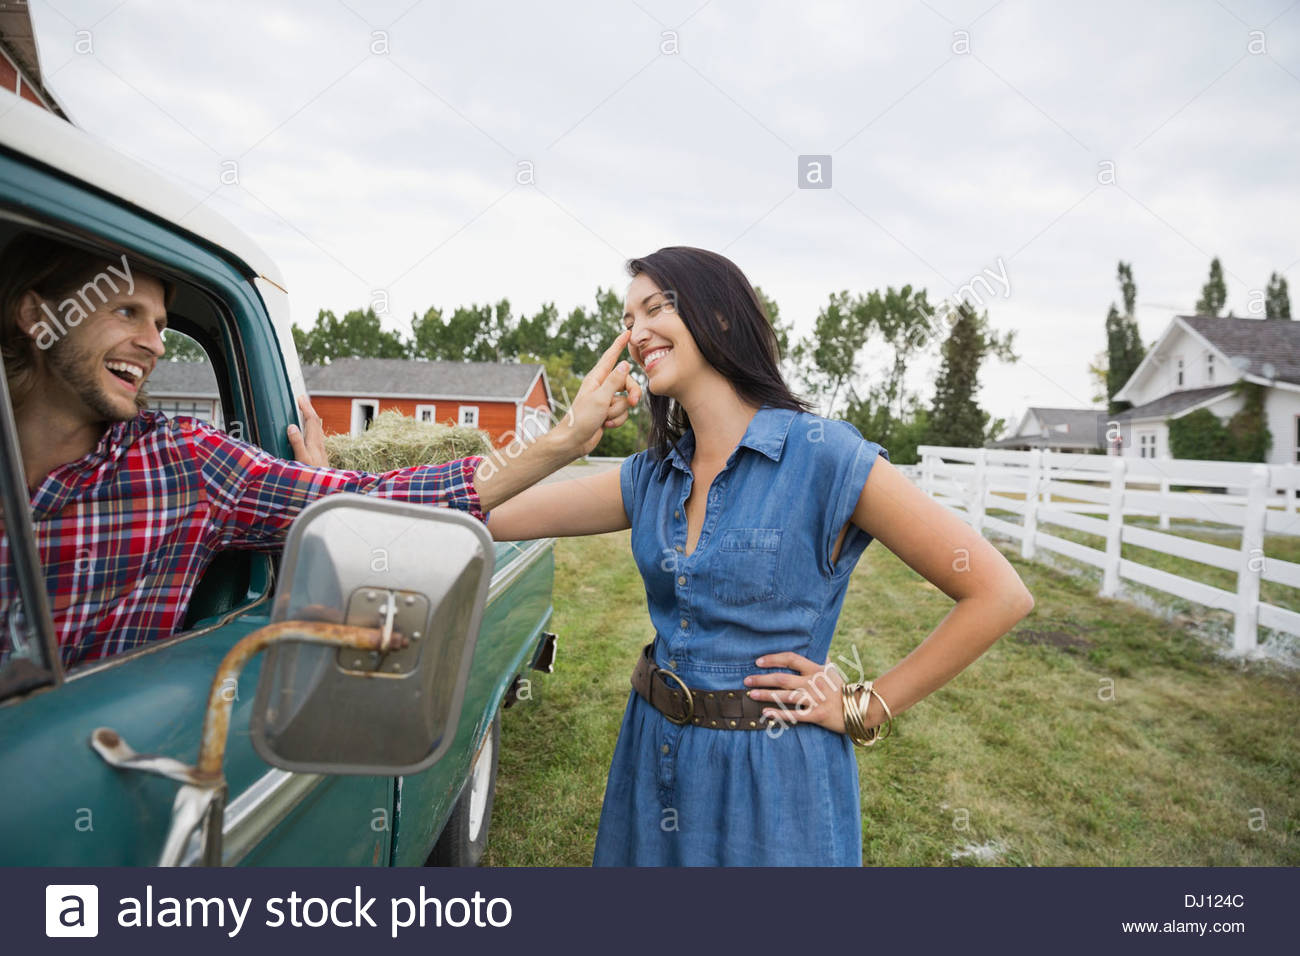 Man giving affectionate good-bye to woman - Stock Image